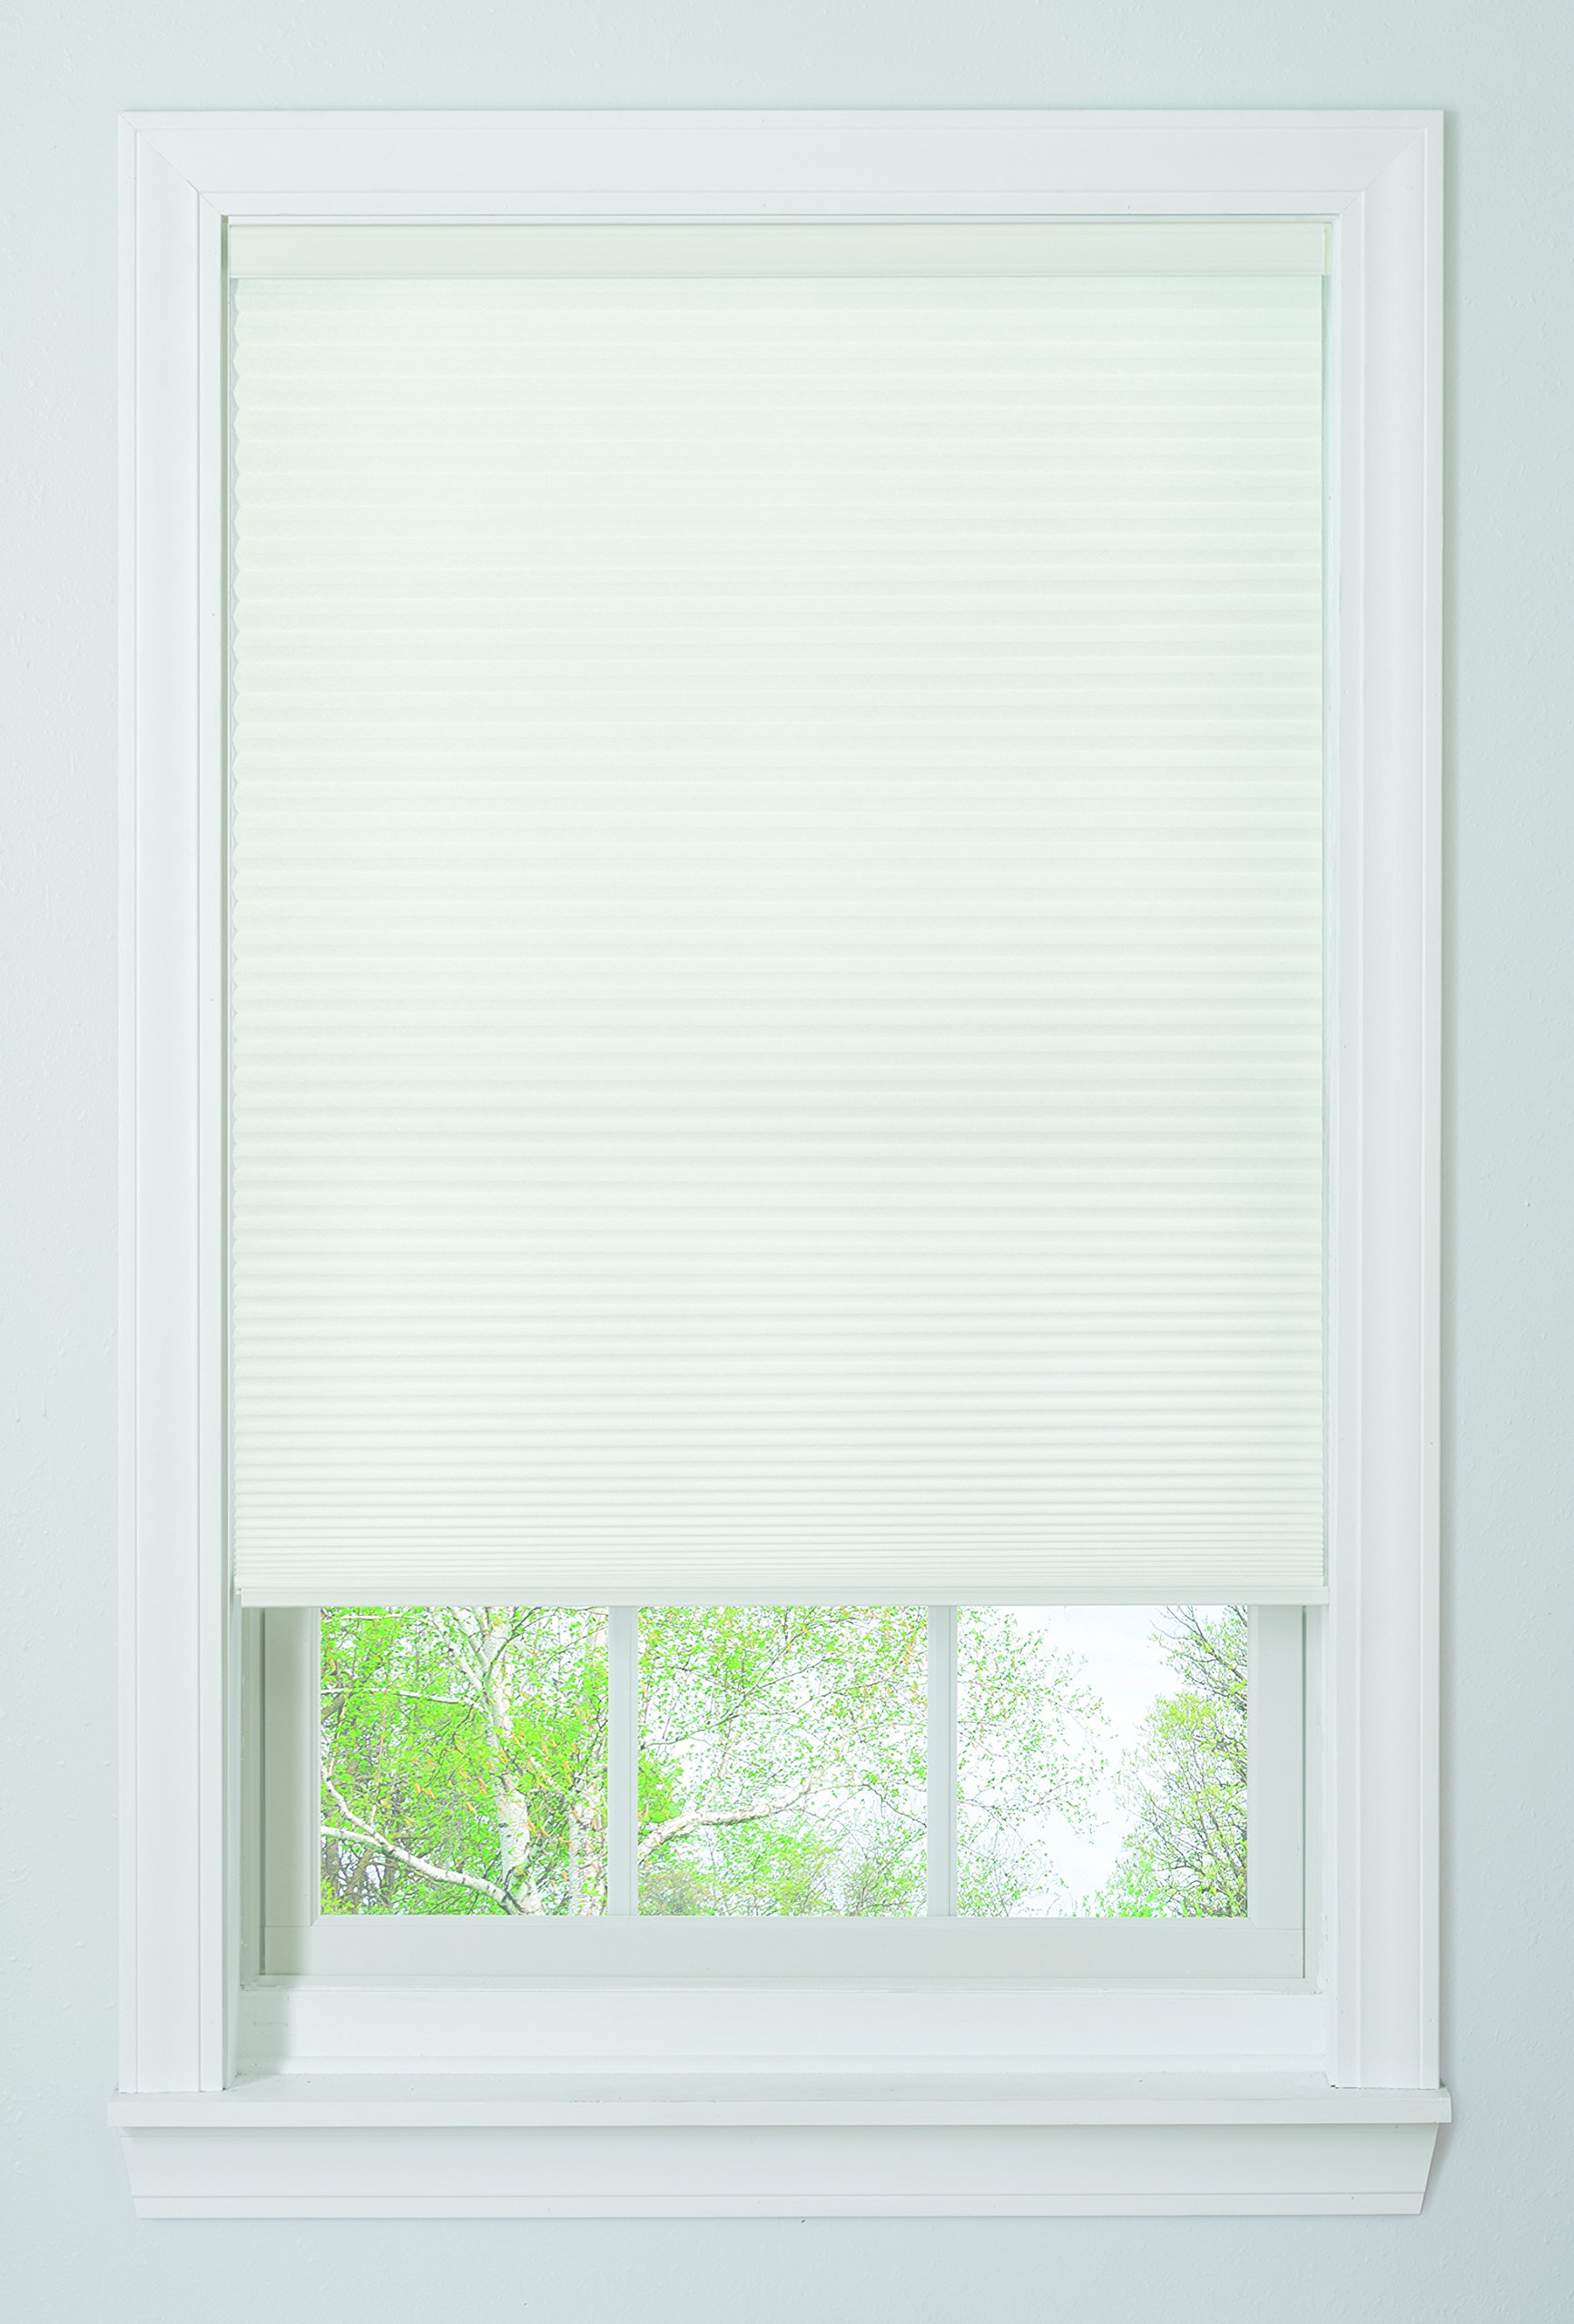 Bali Blinds Cordless Light Filtering Cellular Shade, 27'' x 64'', White